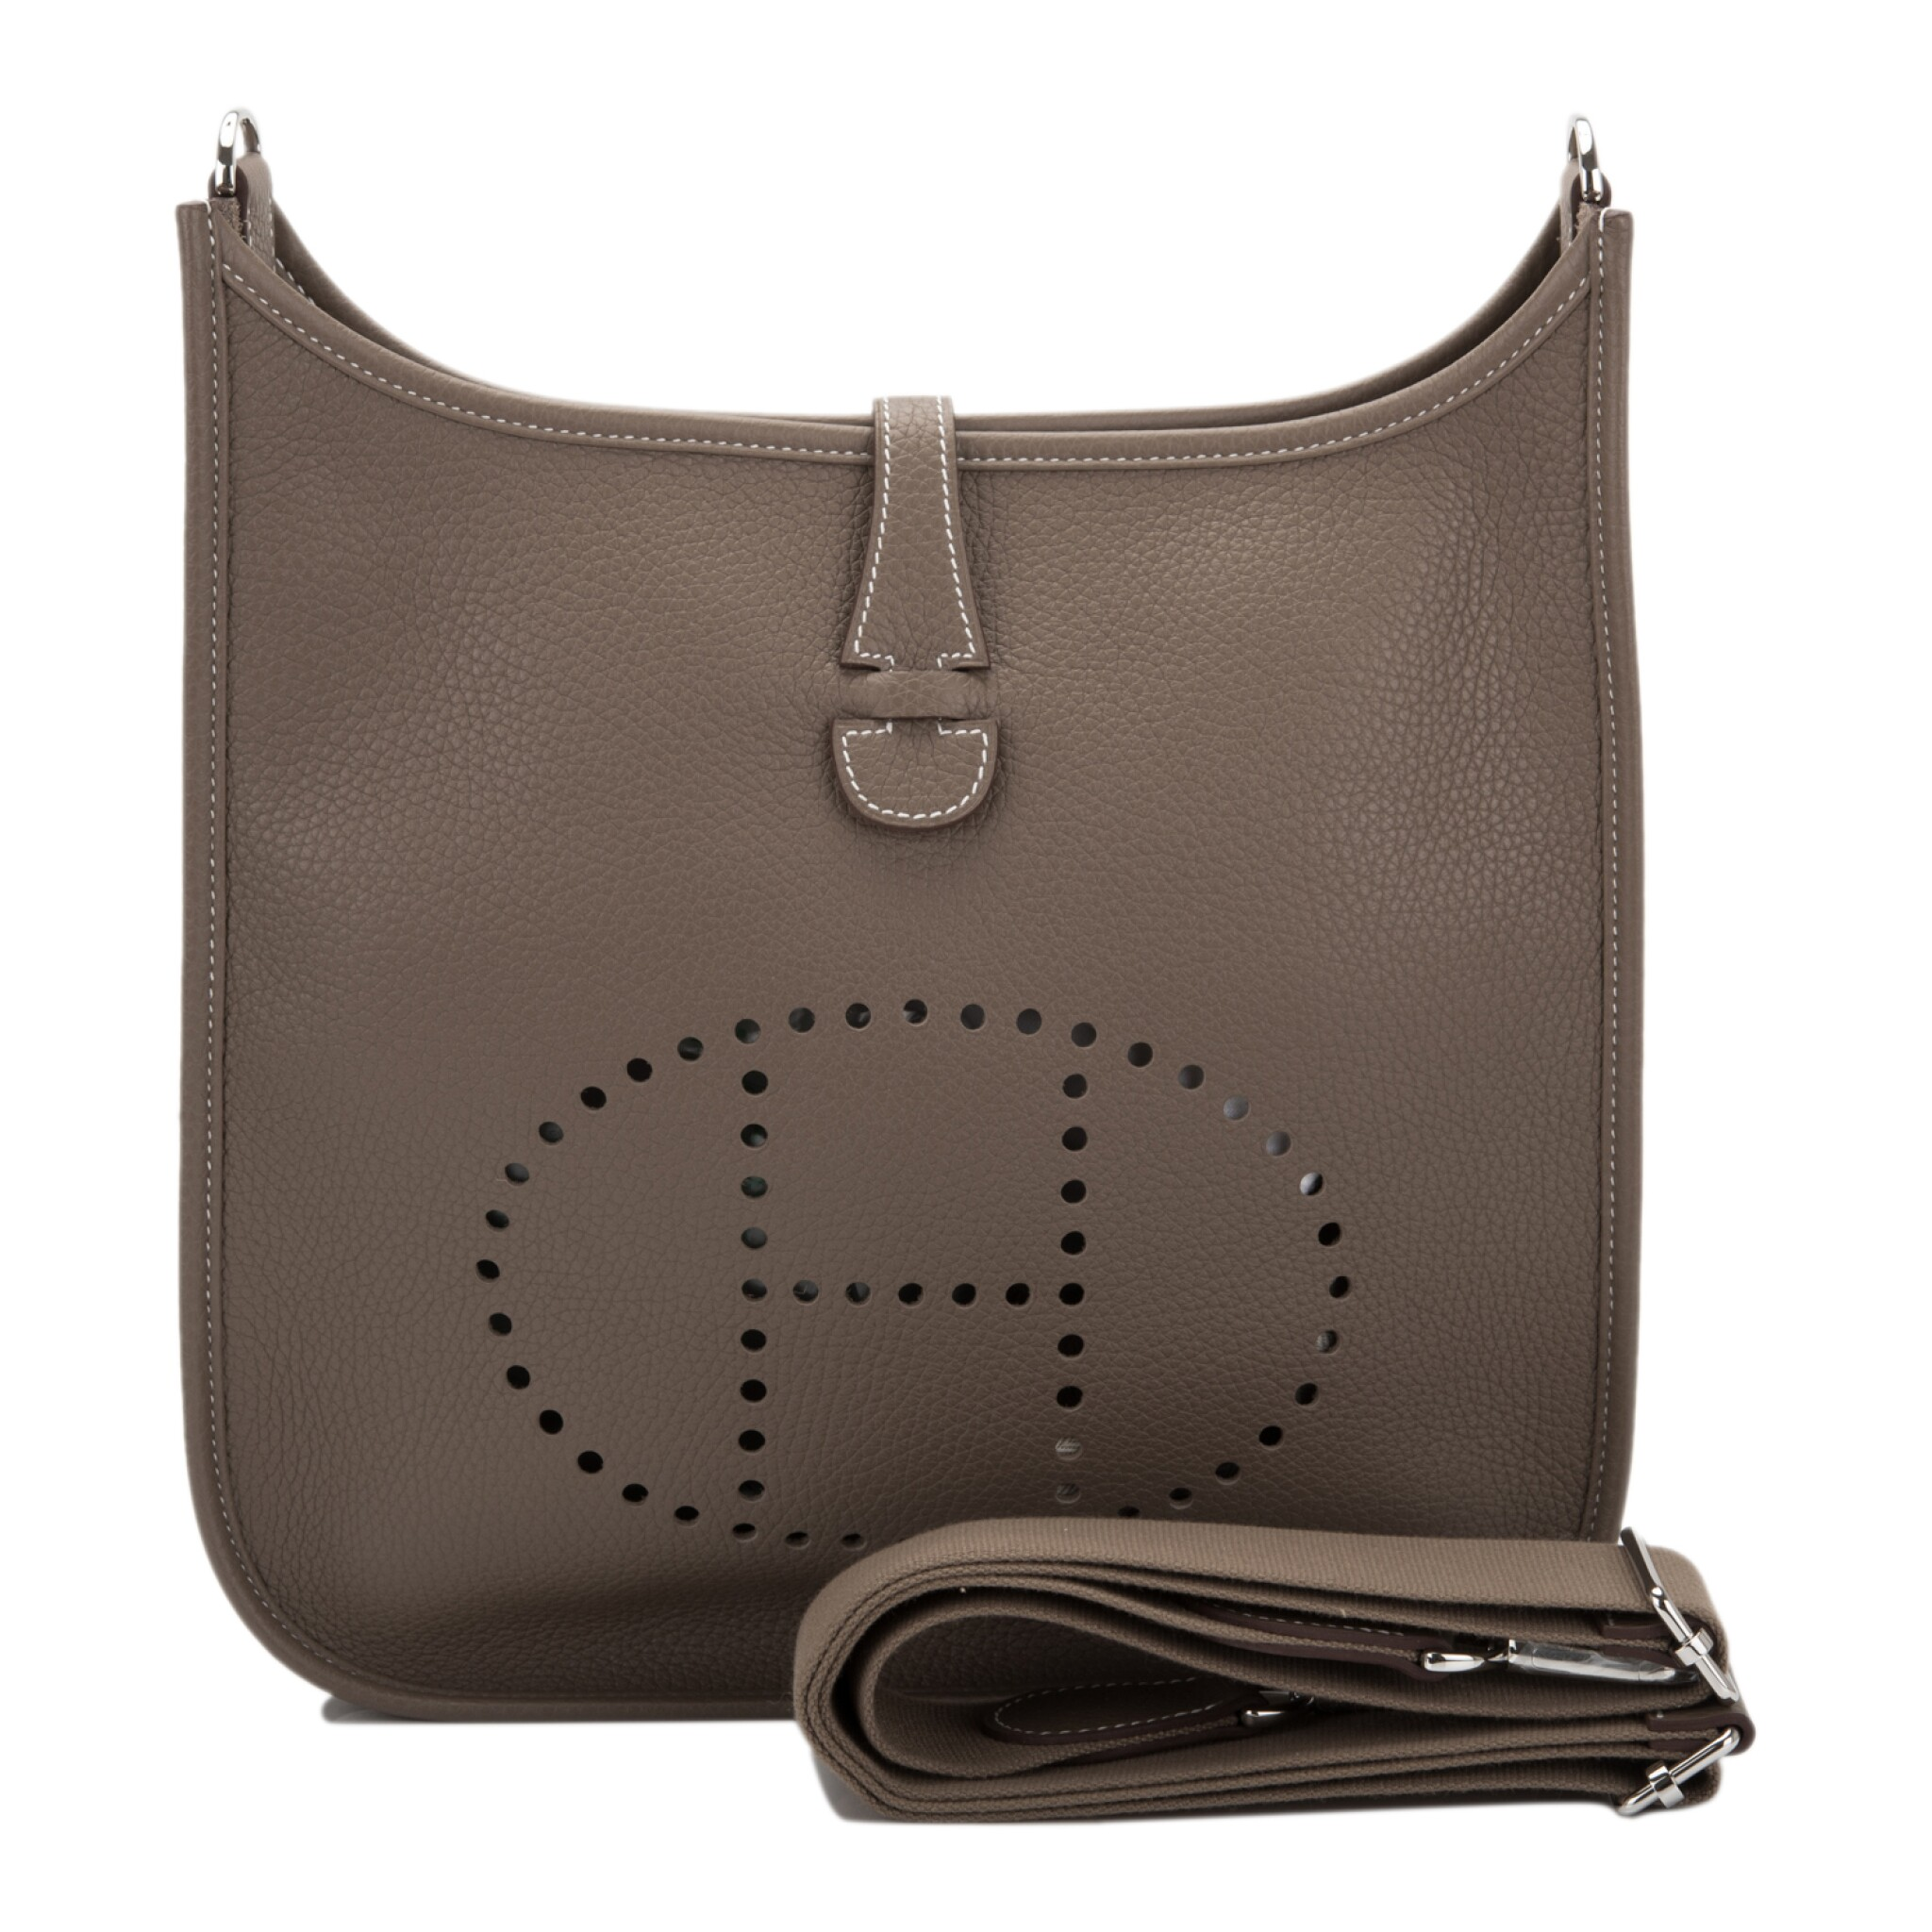 HERMÈS | ETOUPE EVELYNE PM OF CLEMENCE LEATHER WITH PALLADIUM HARDWARE